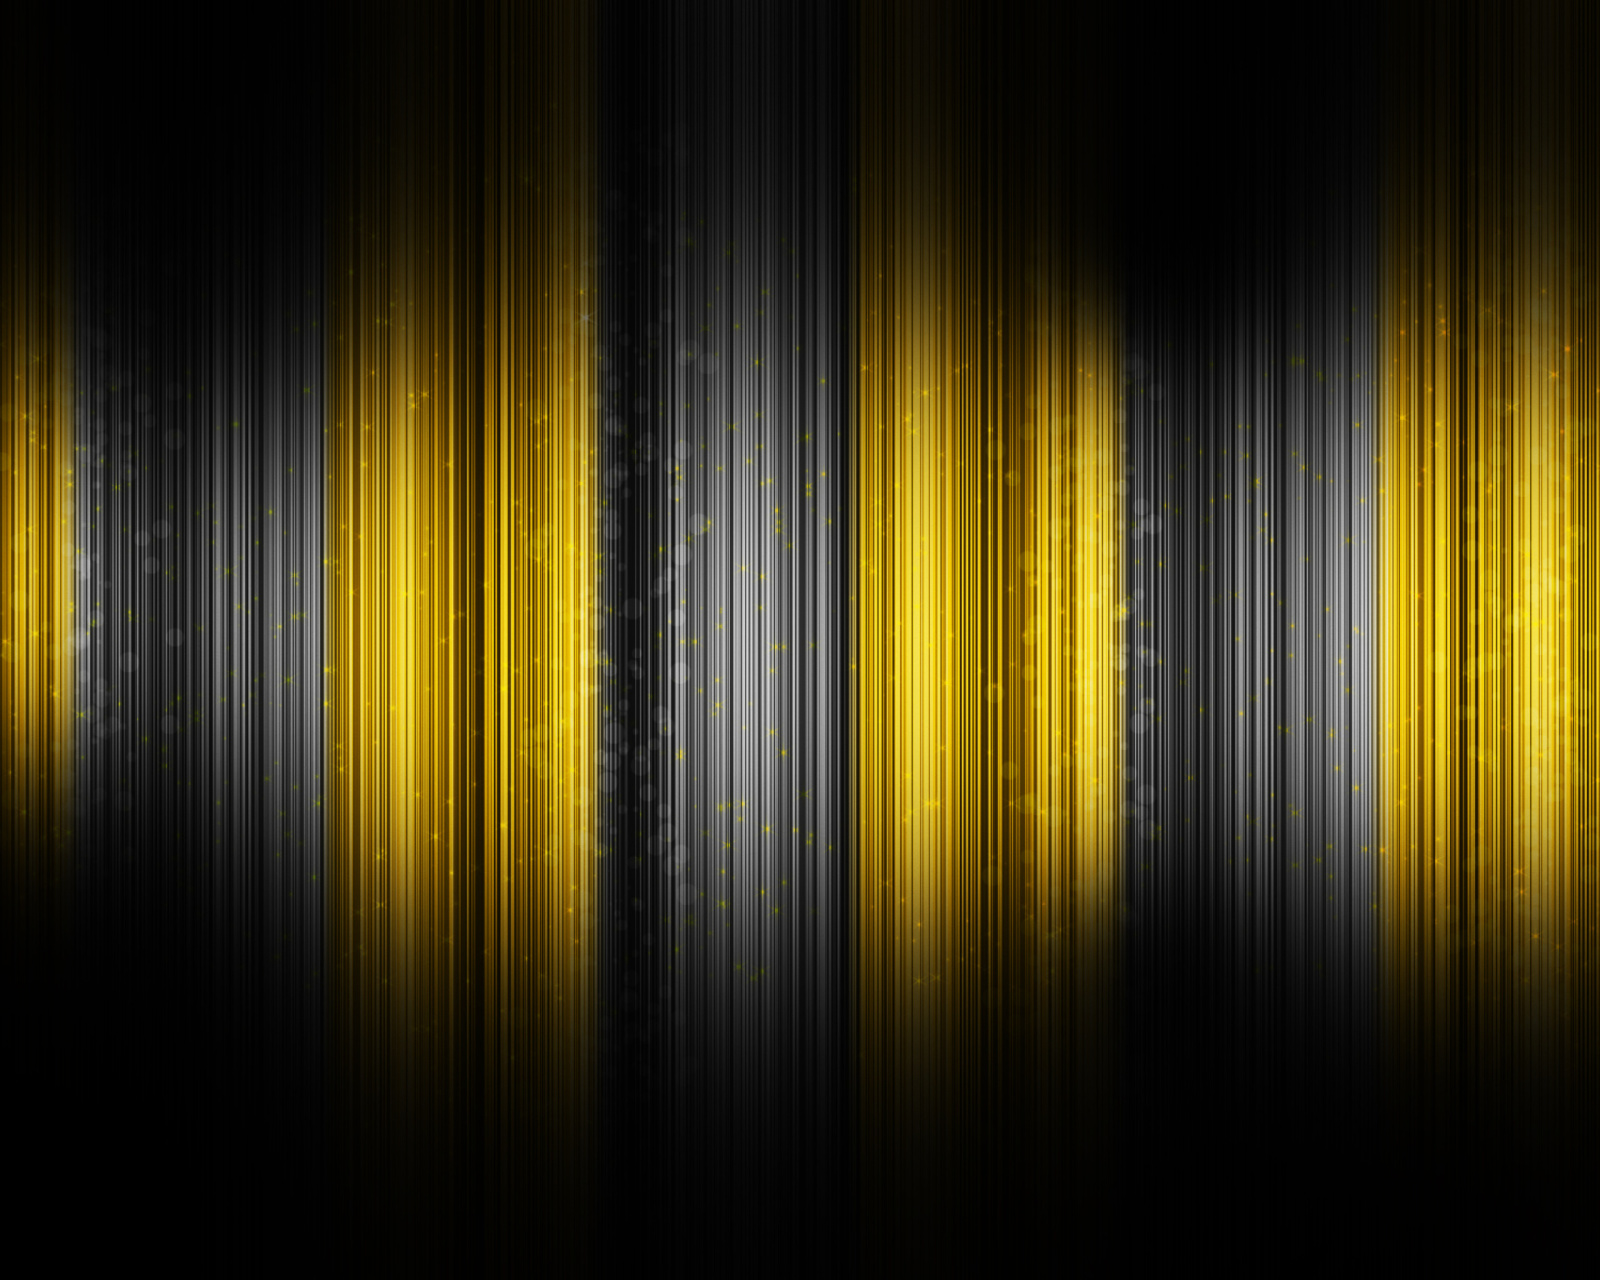 Yellow Lines Pattern wallpaper 1600x1280